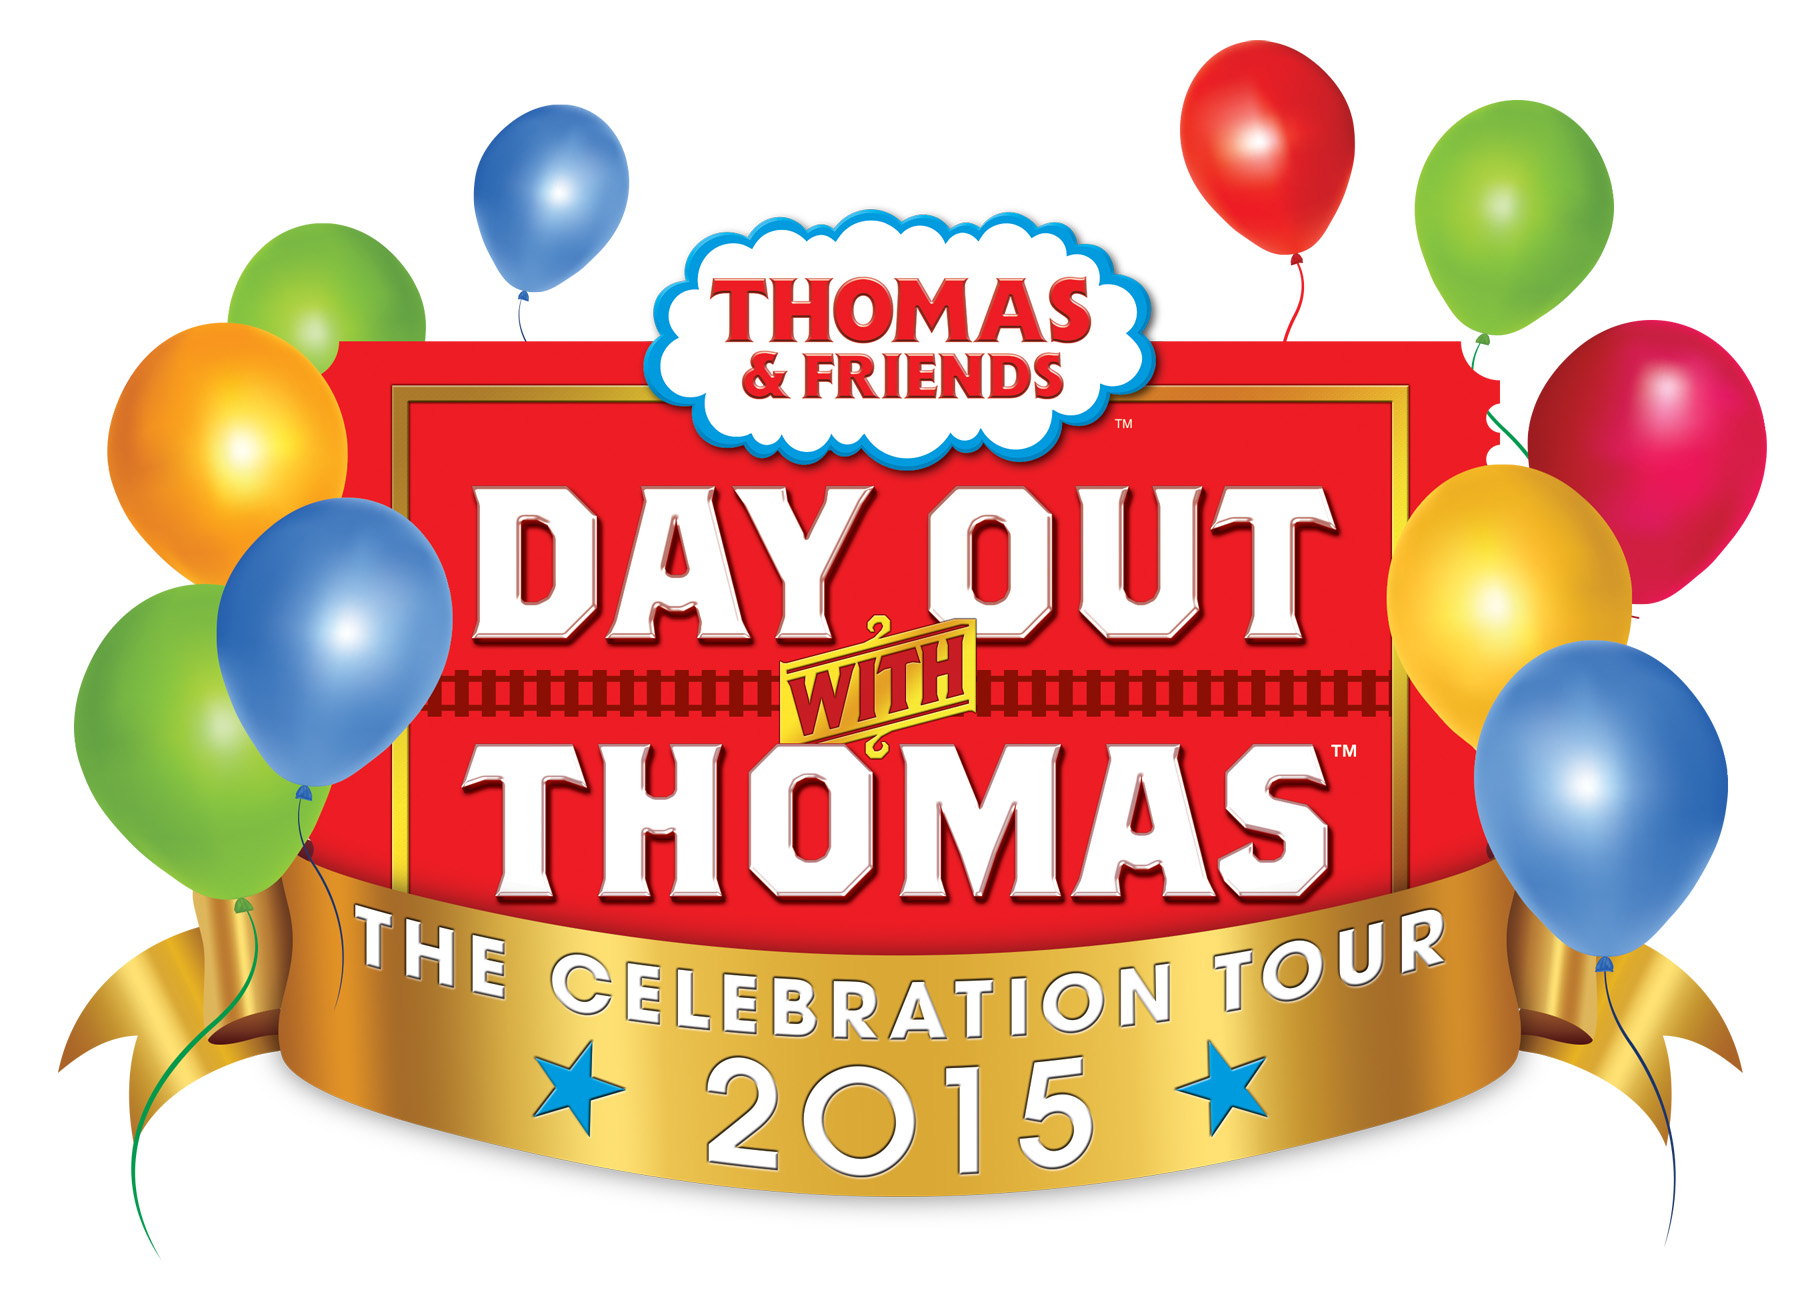 A Day Out with Thomas - Celebration Tour 2015